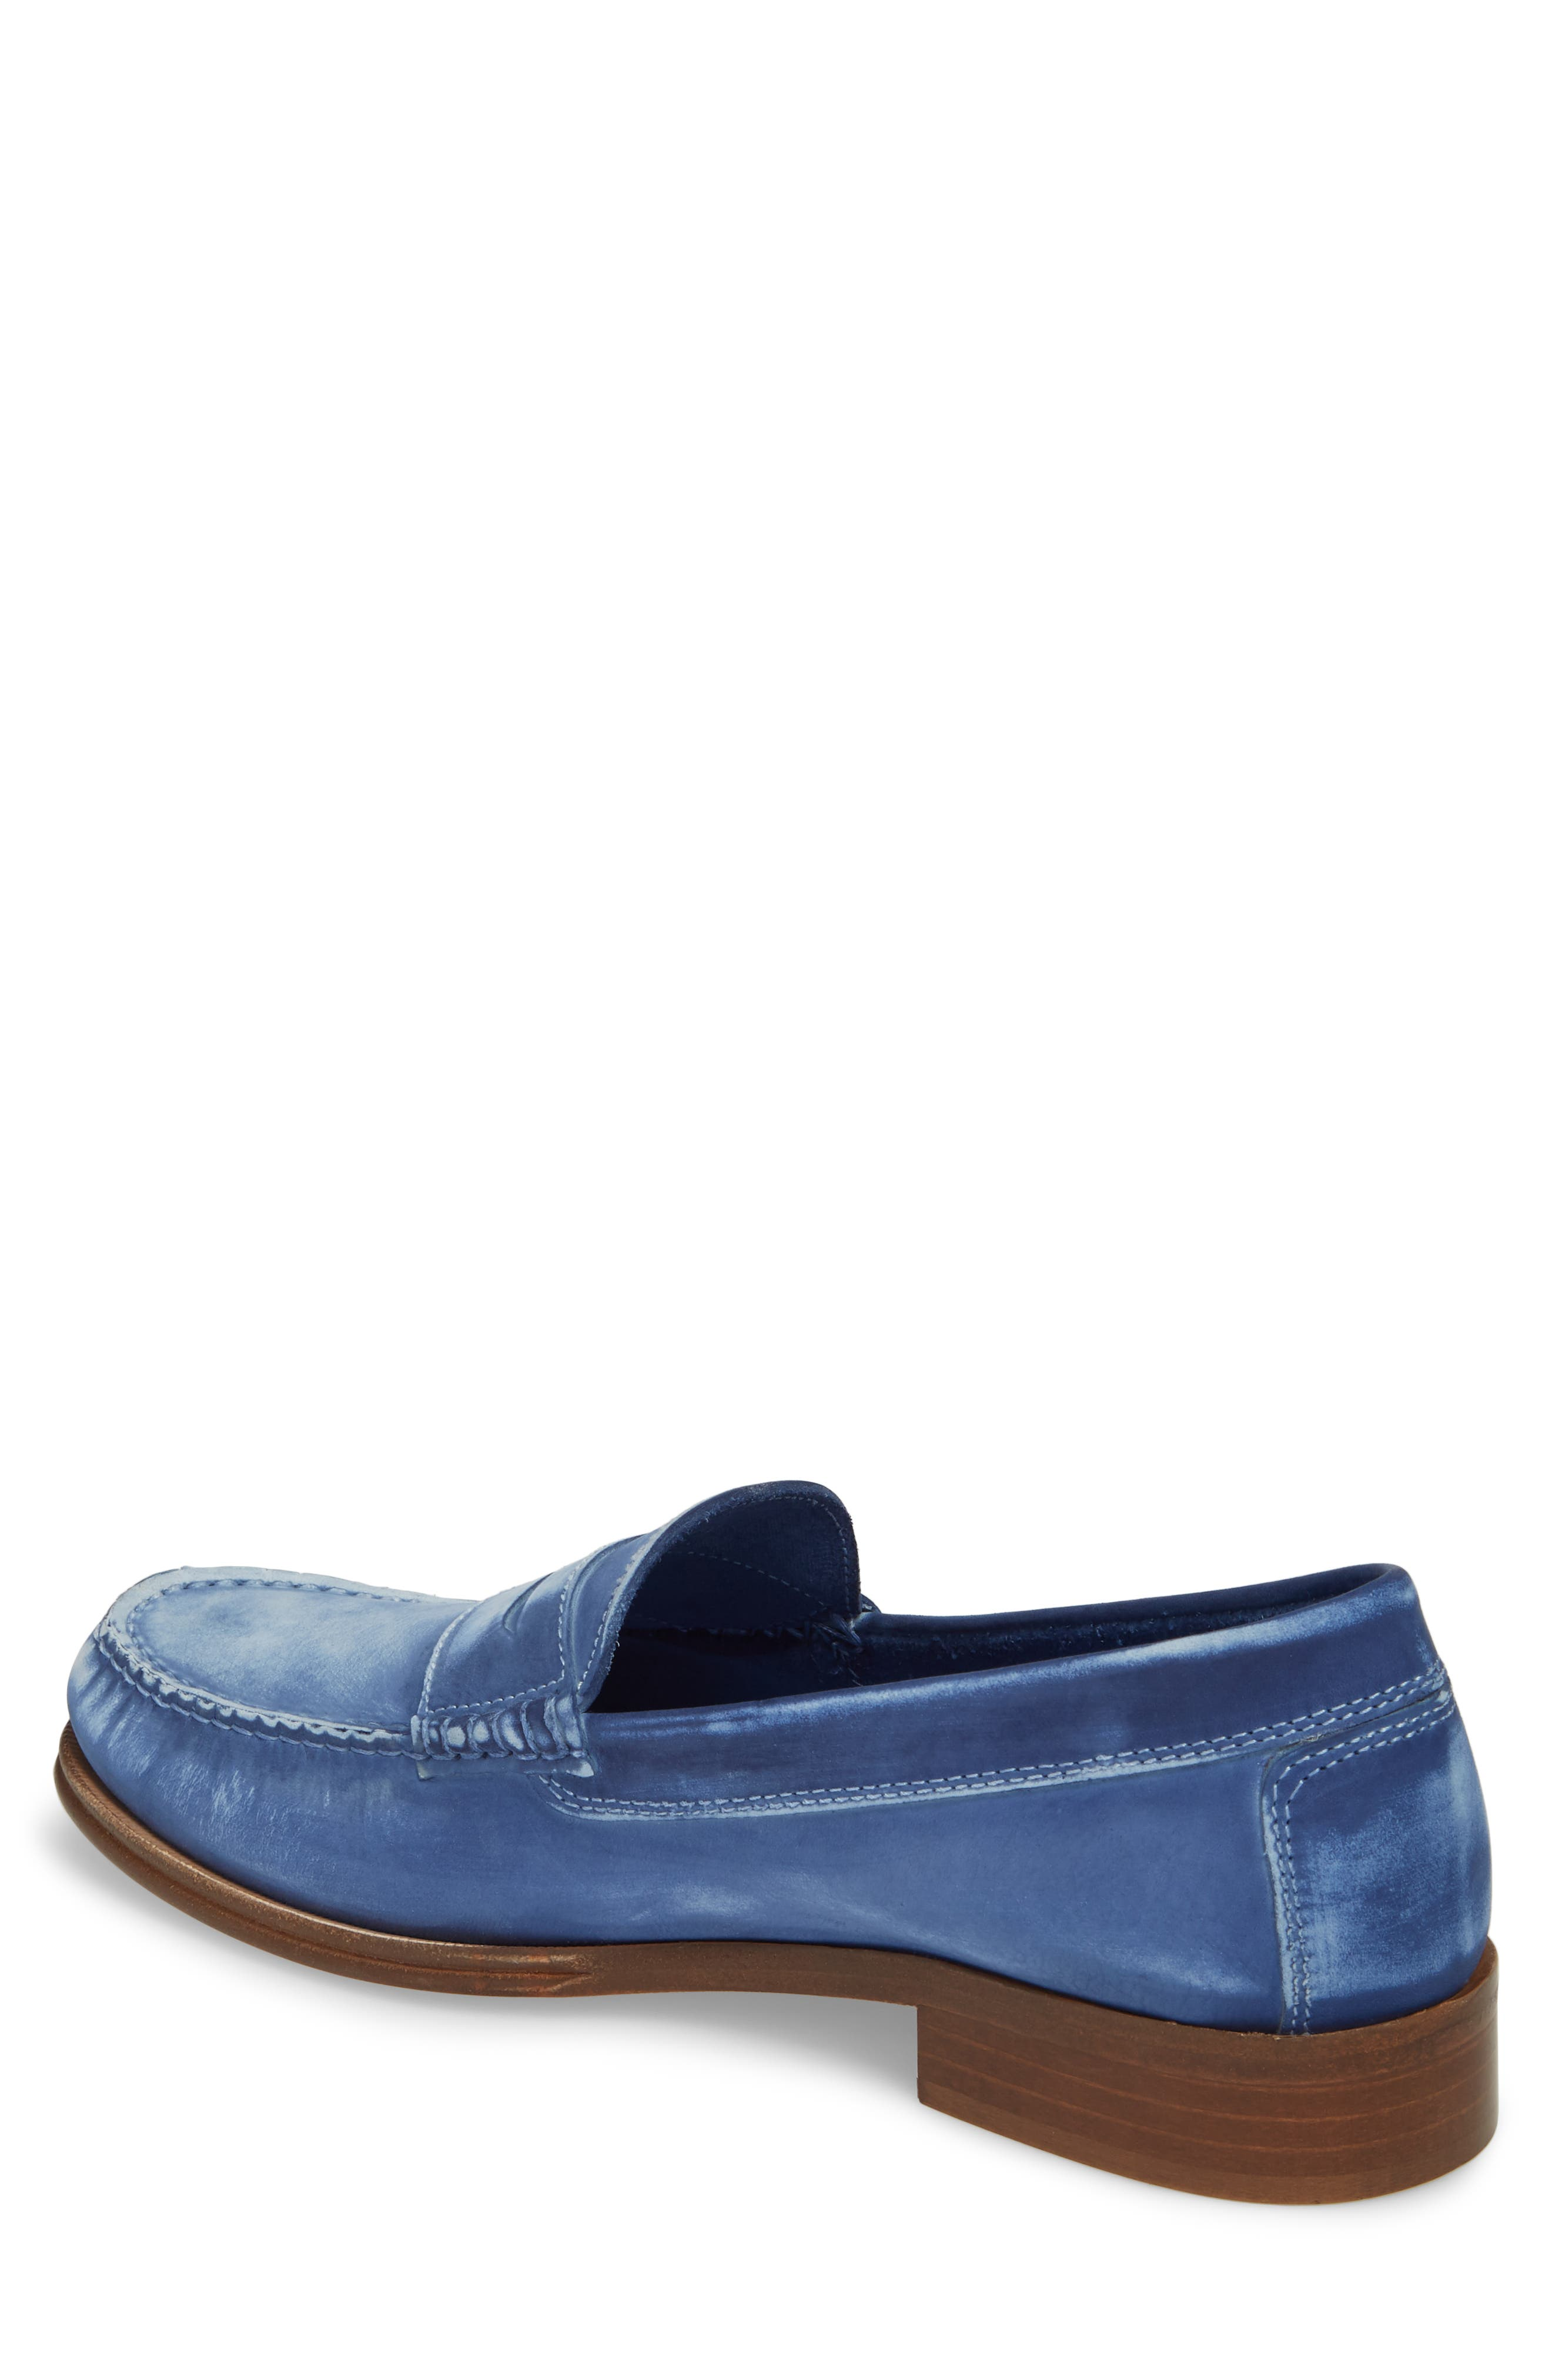 Nicola Penny Loafer,                             Alternate thumbnail 12, color,